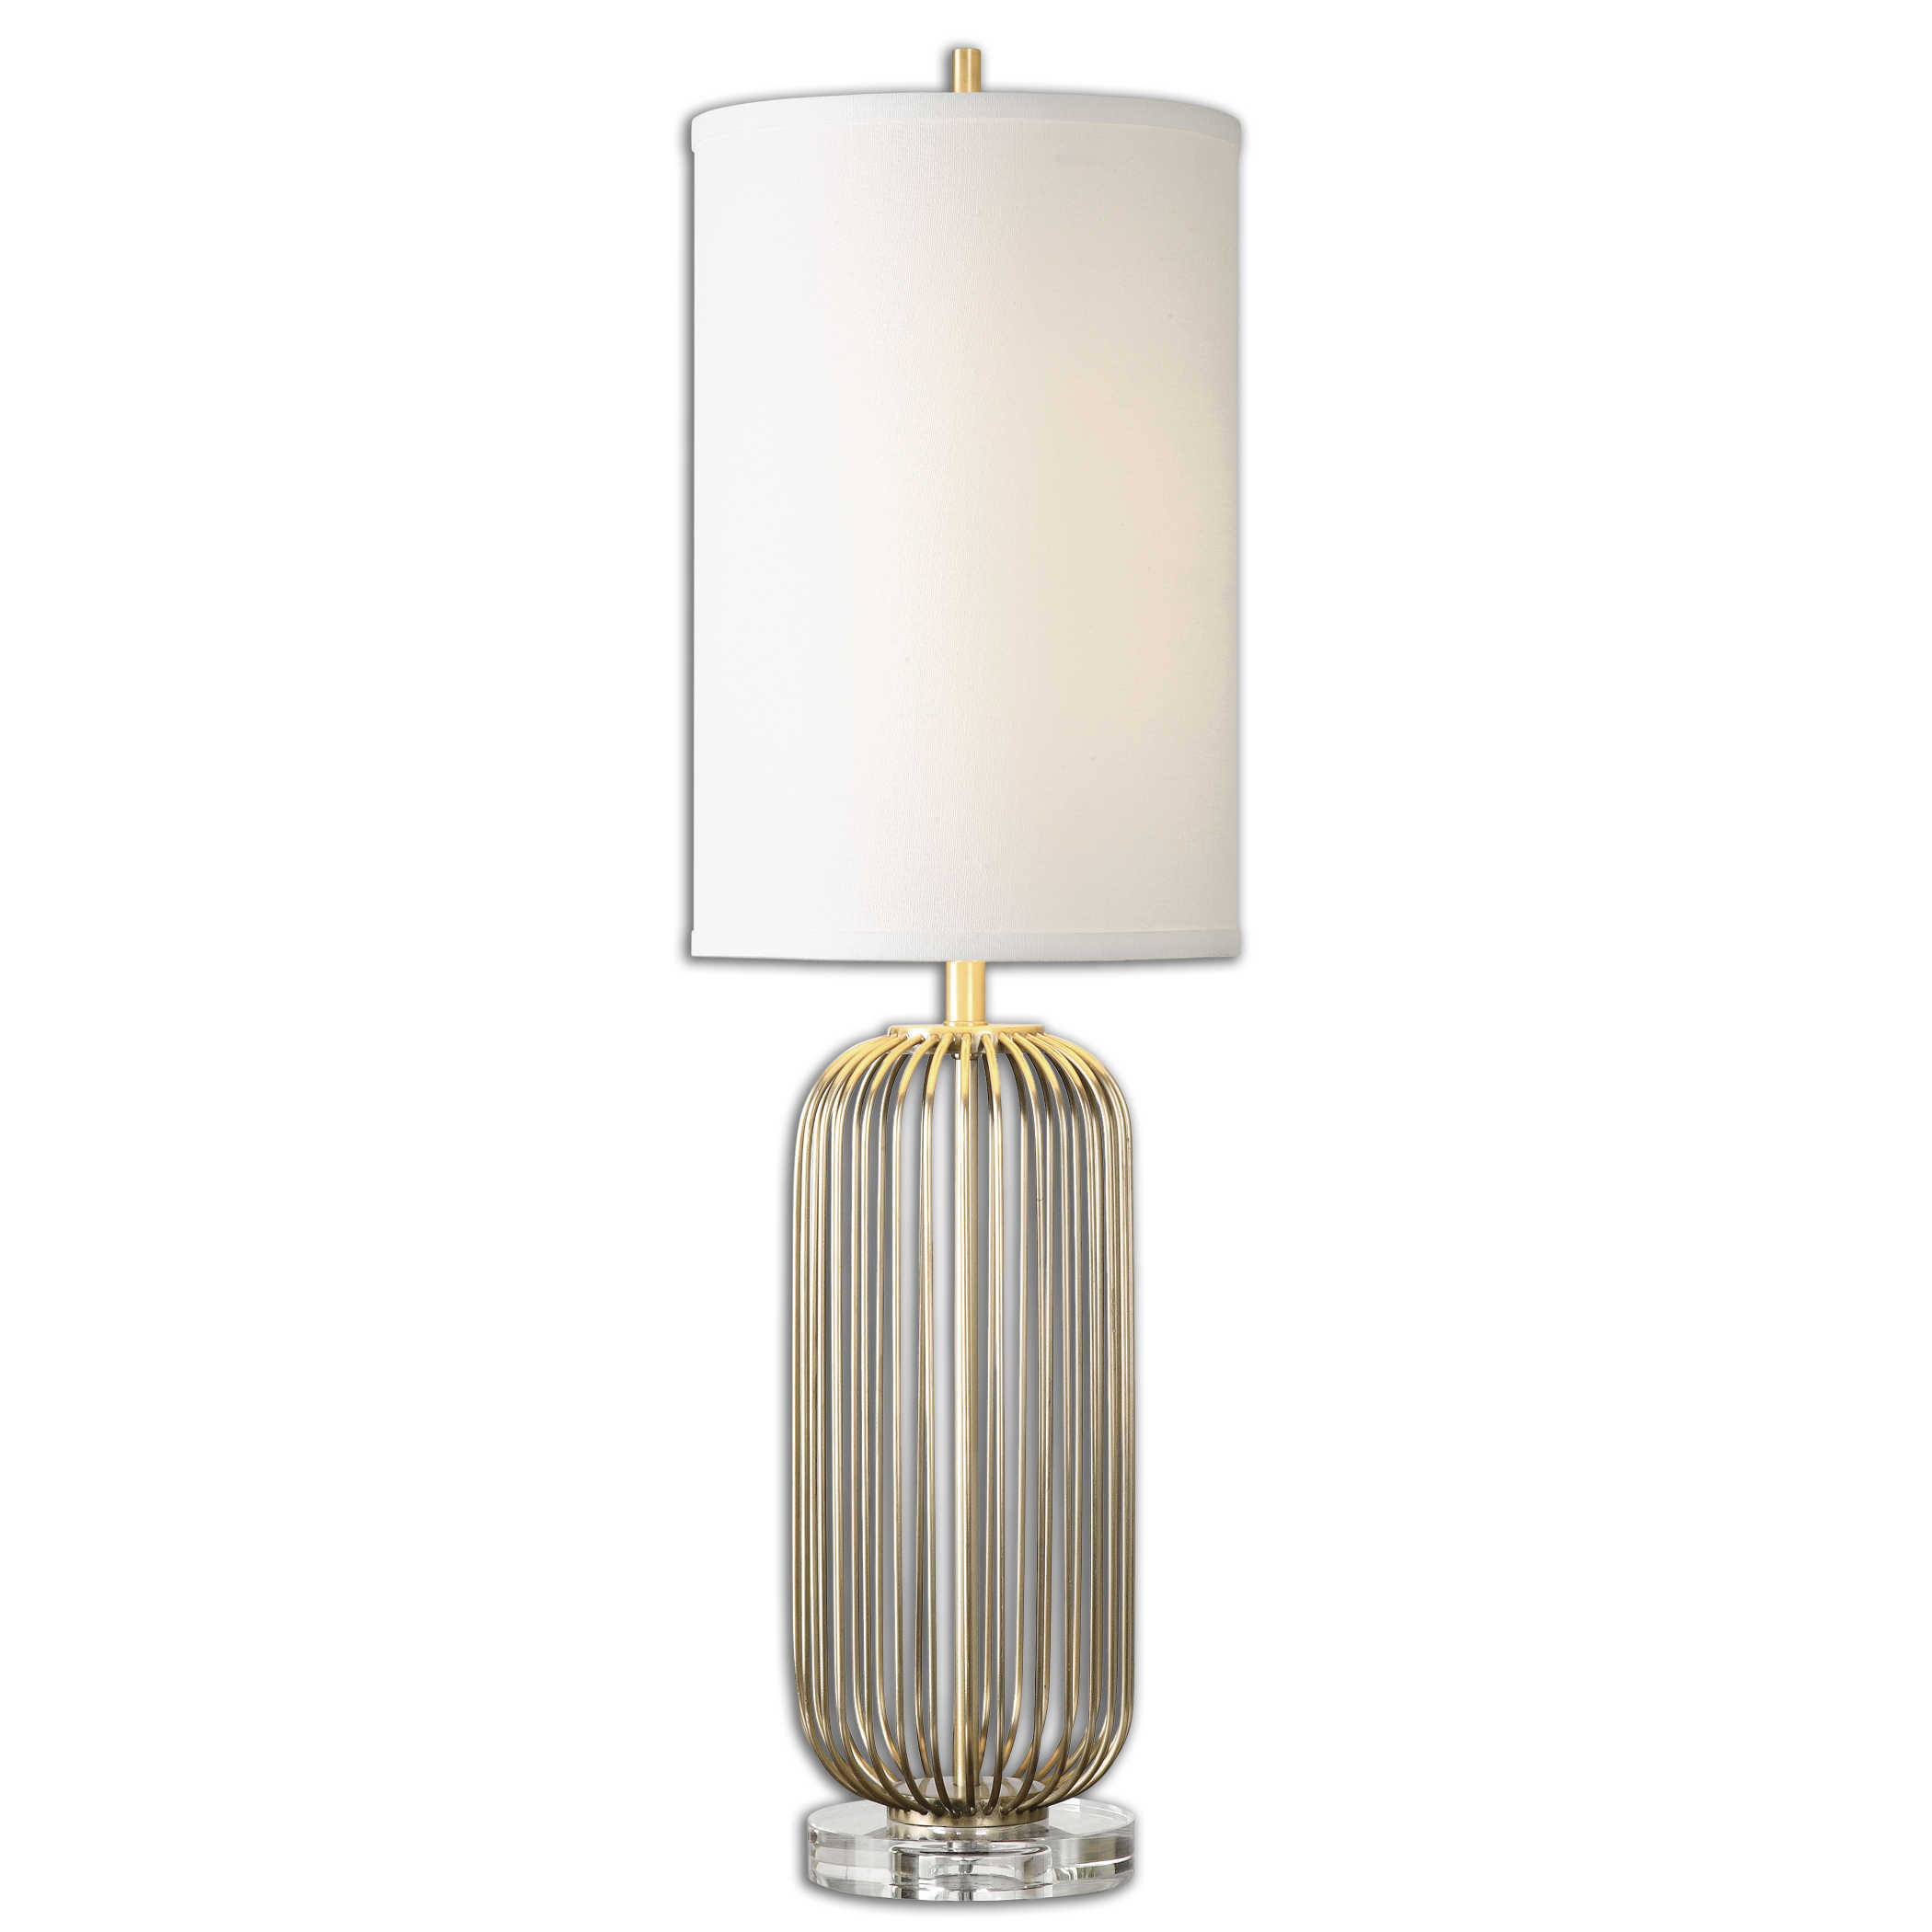 Gold Metal Lamp-$364.00